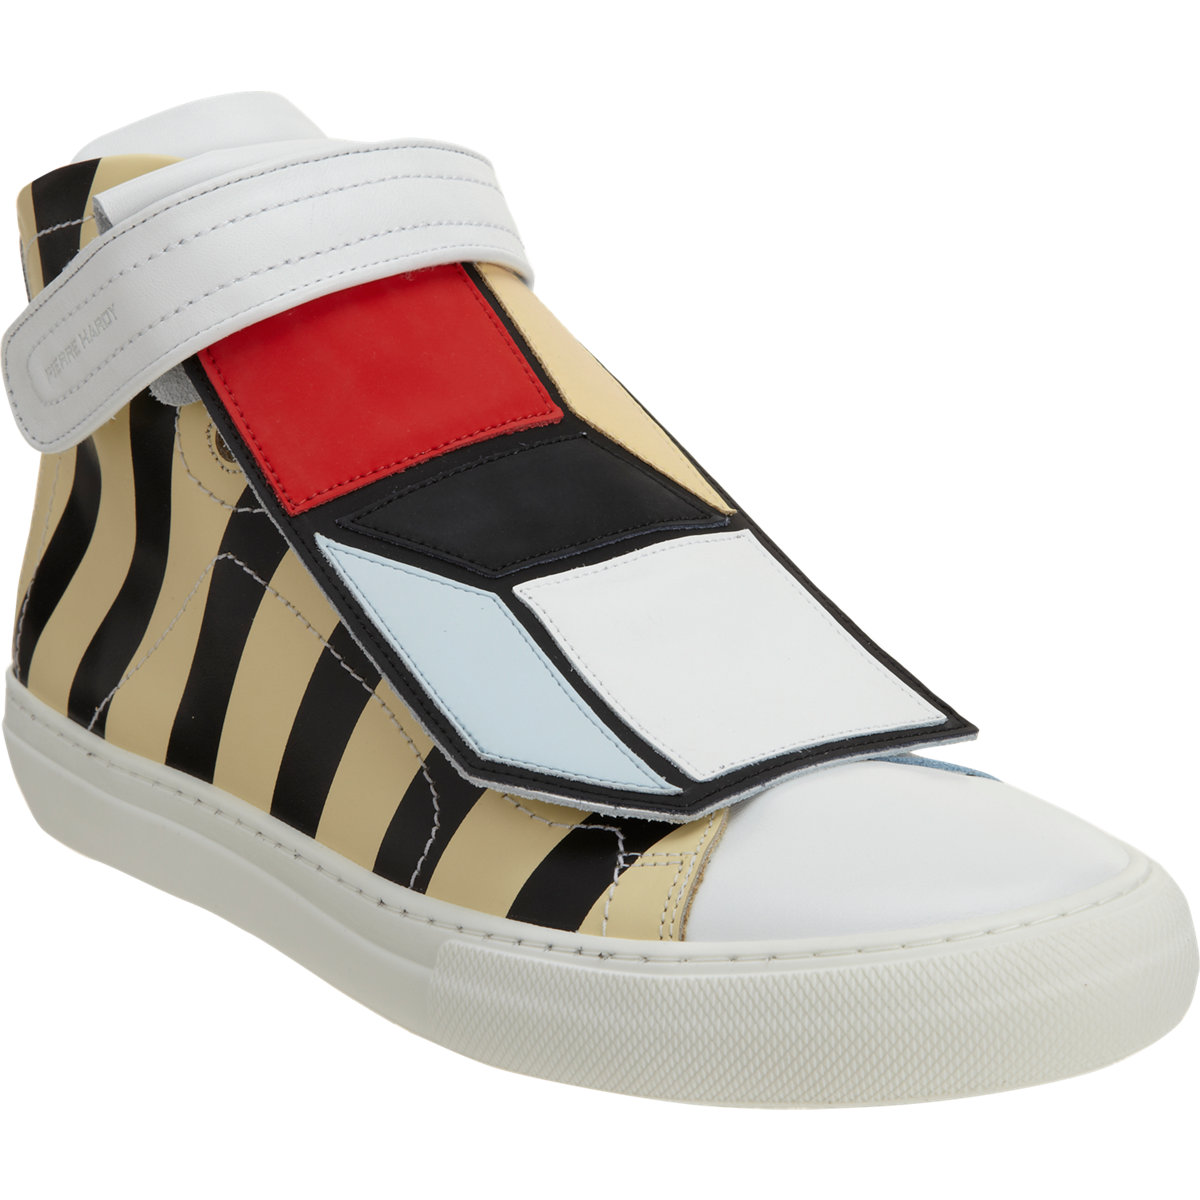 Pierre hardy striped mid top sneaker with colorblock cube panel at barneys.com